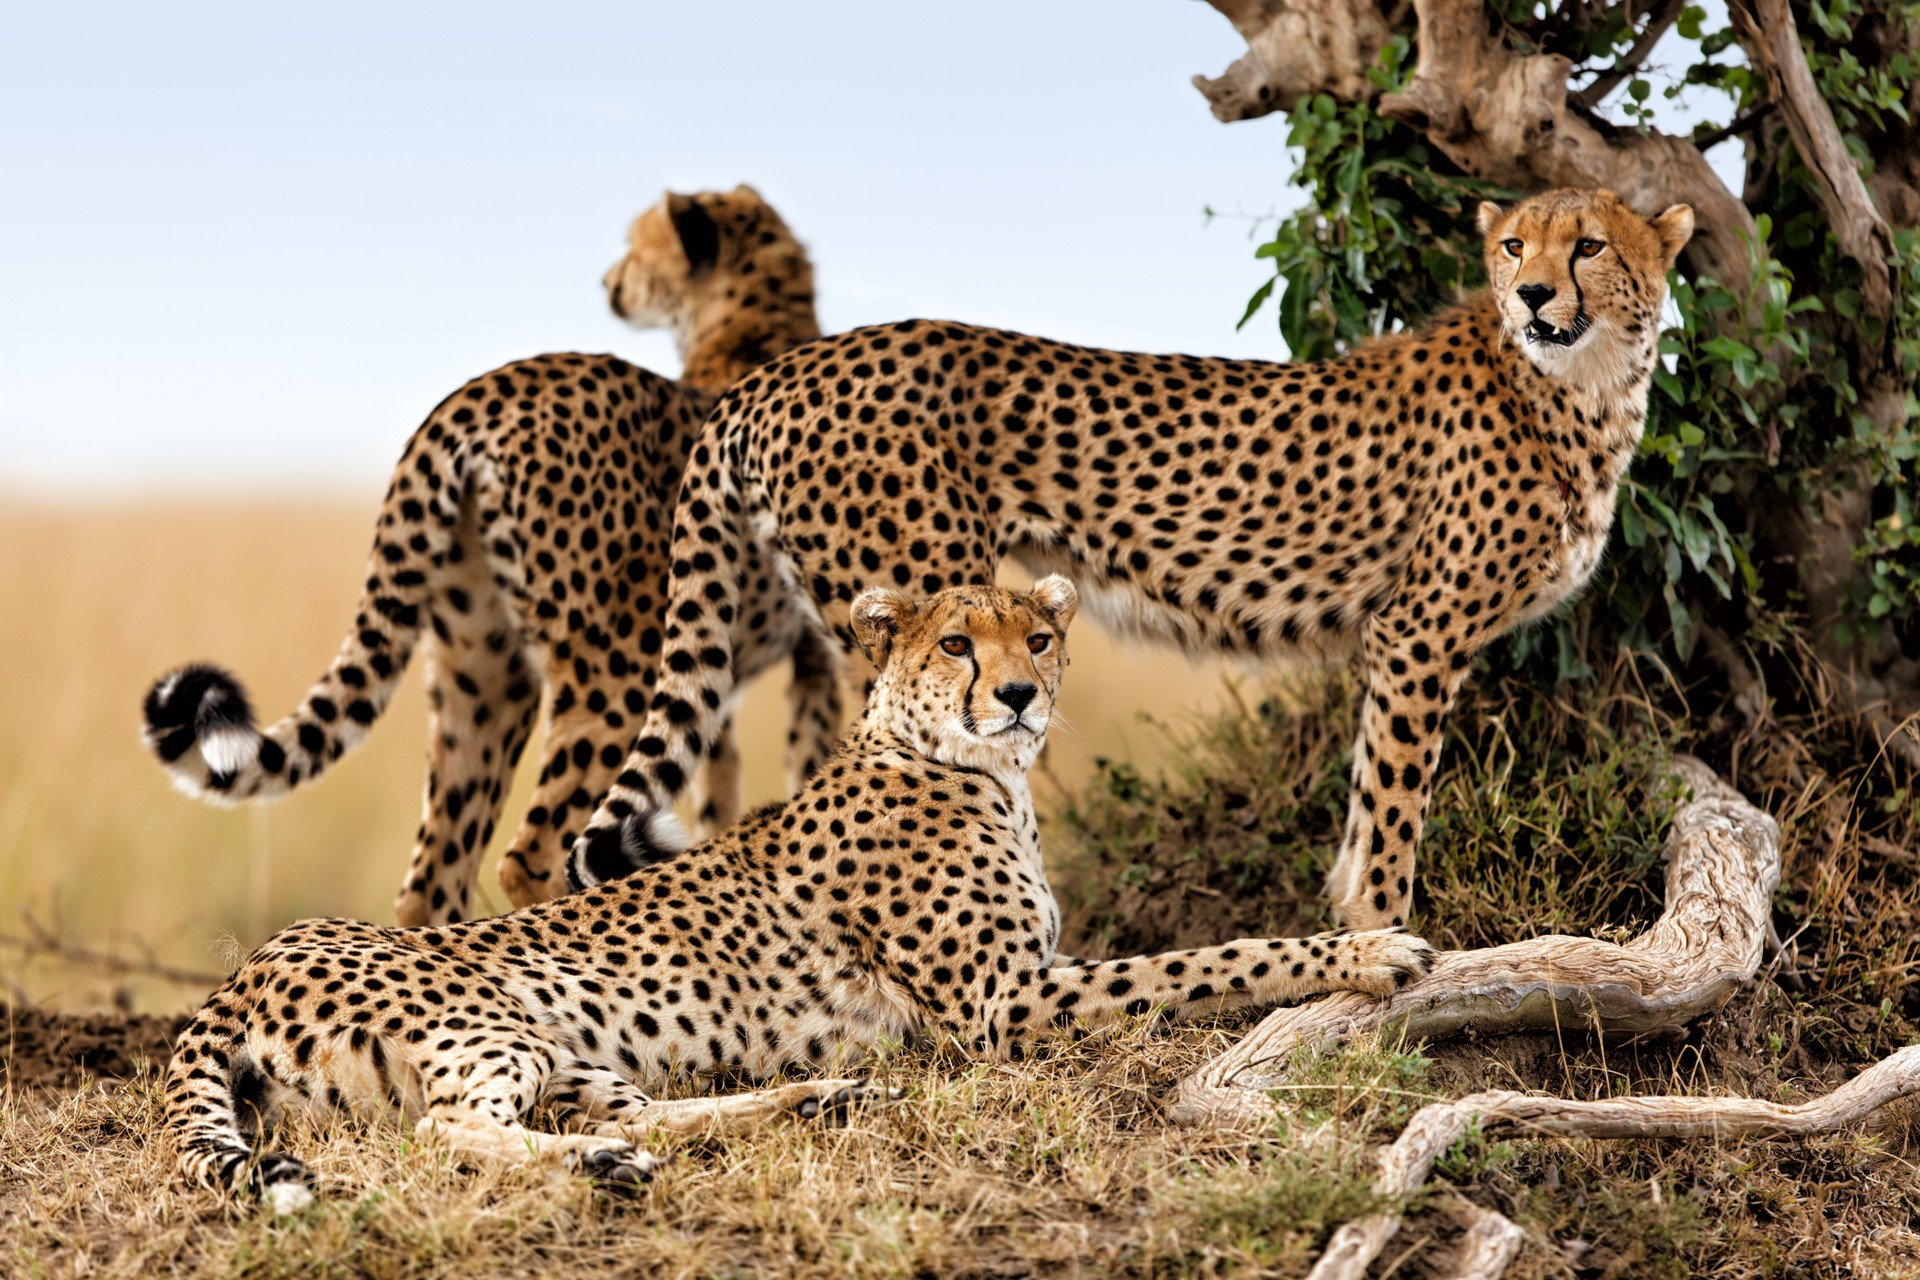 Cheetah family in Kenya's Masai Mara